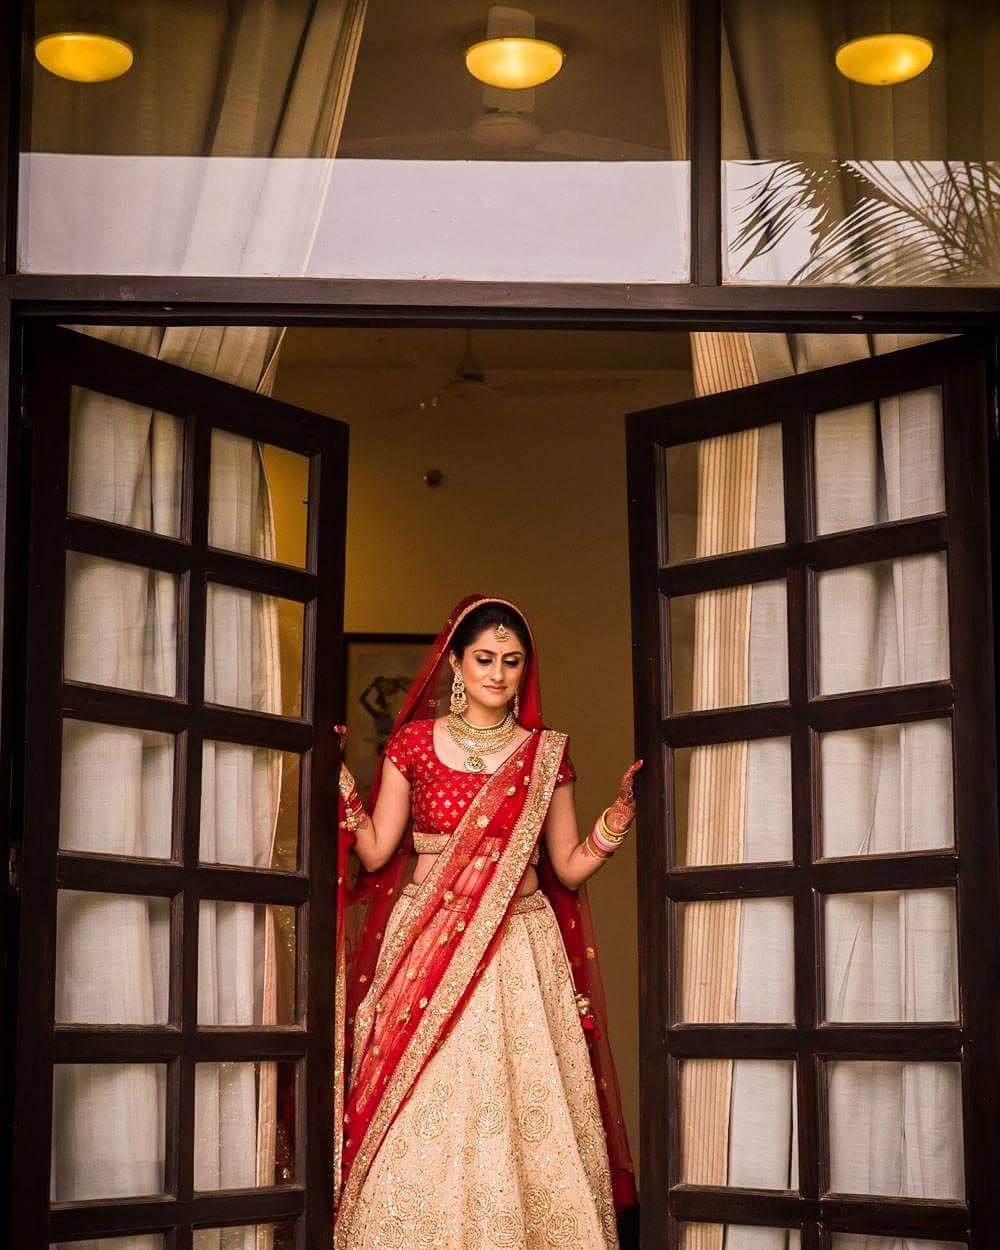 indian wedding photography design%0A Our Wedding Chapter